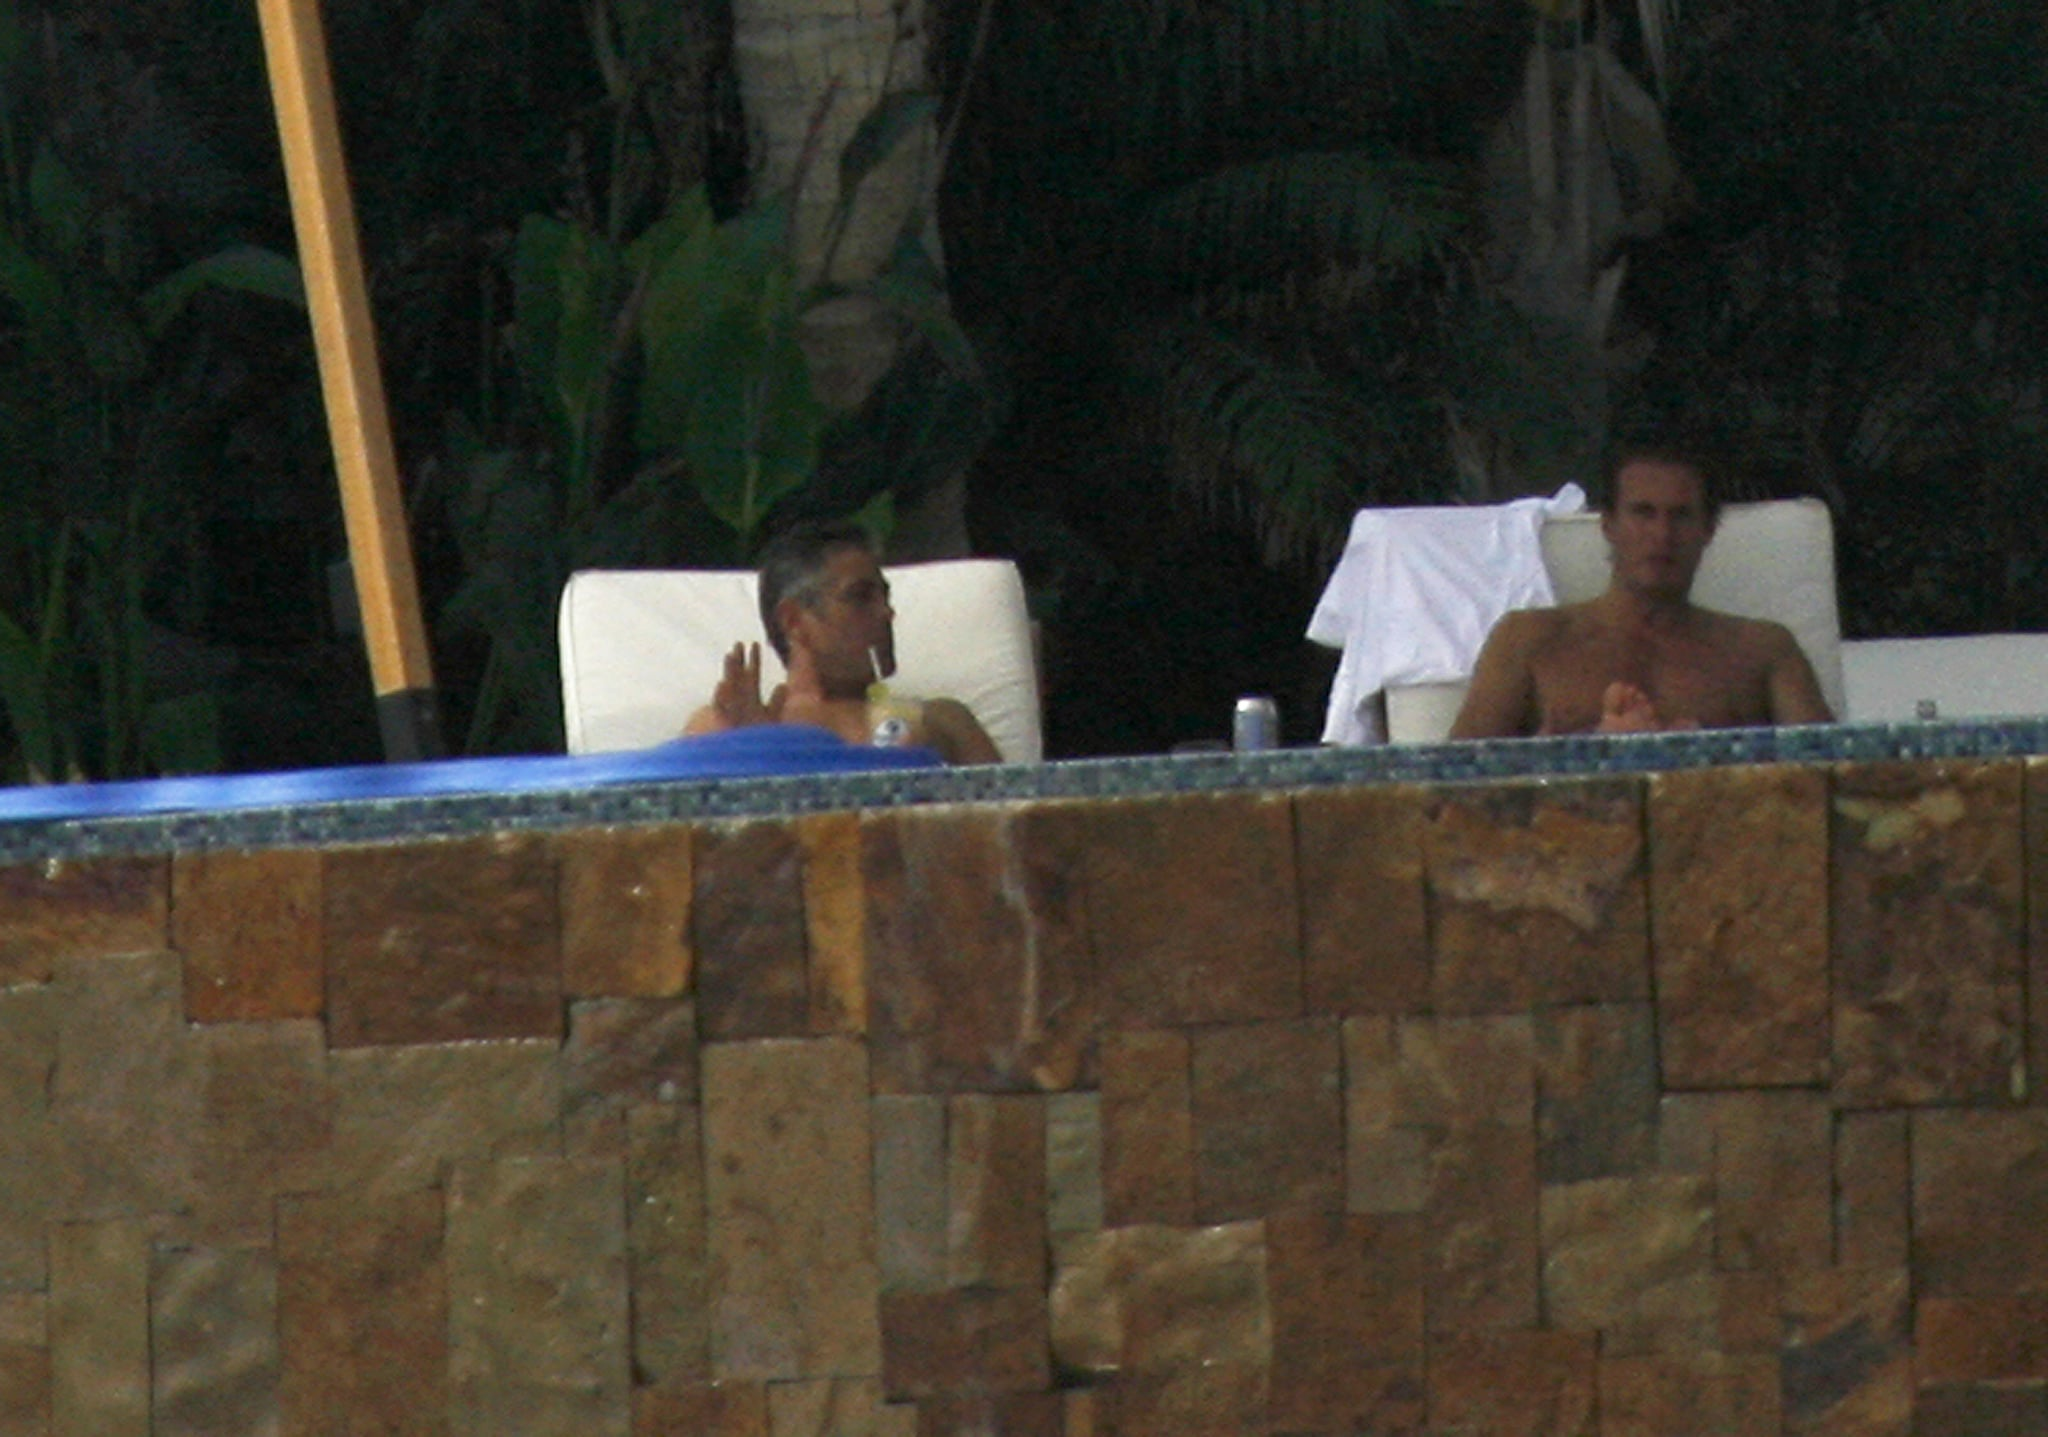 Shirtless s of George Clooney and Rande Gerber in